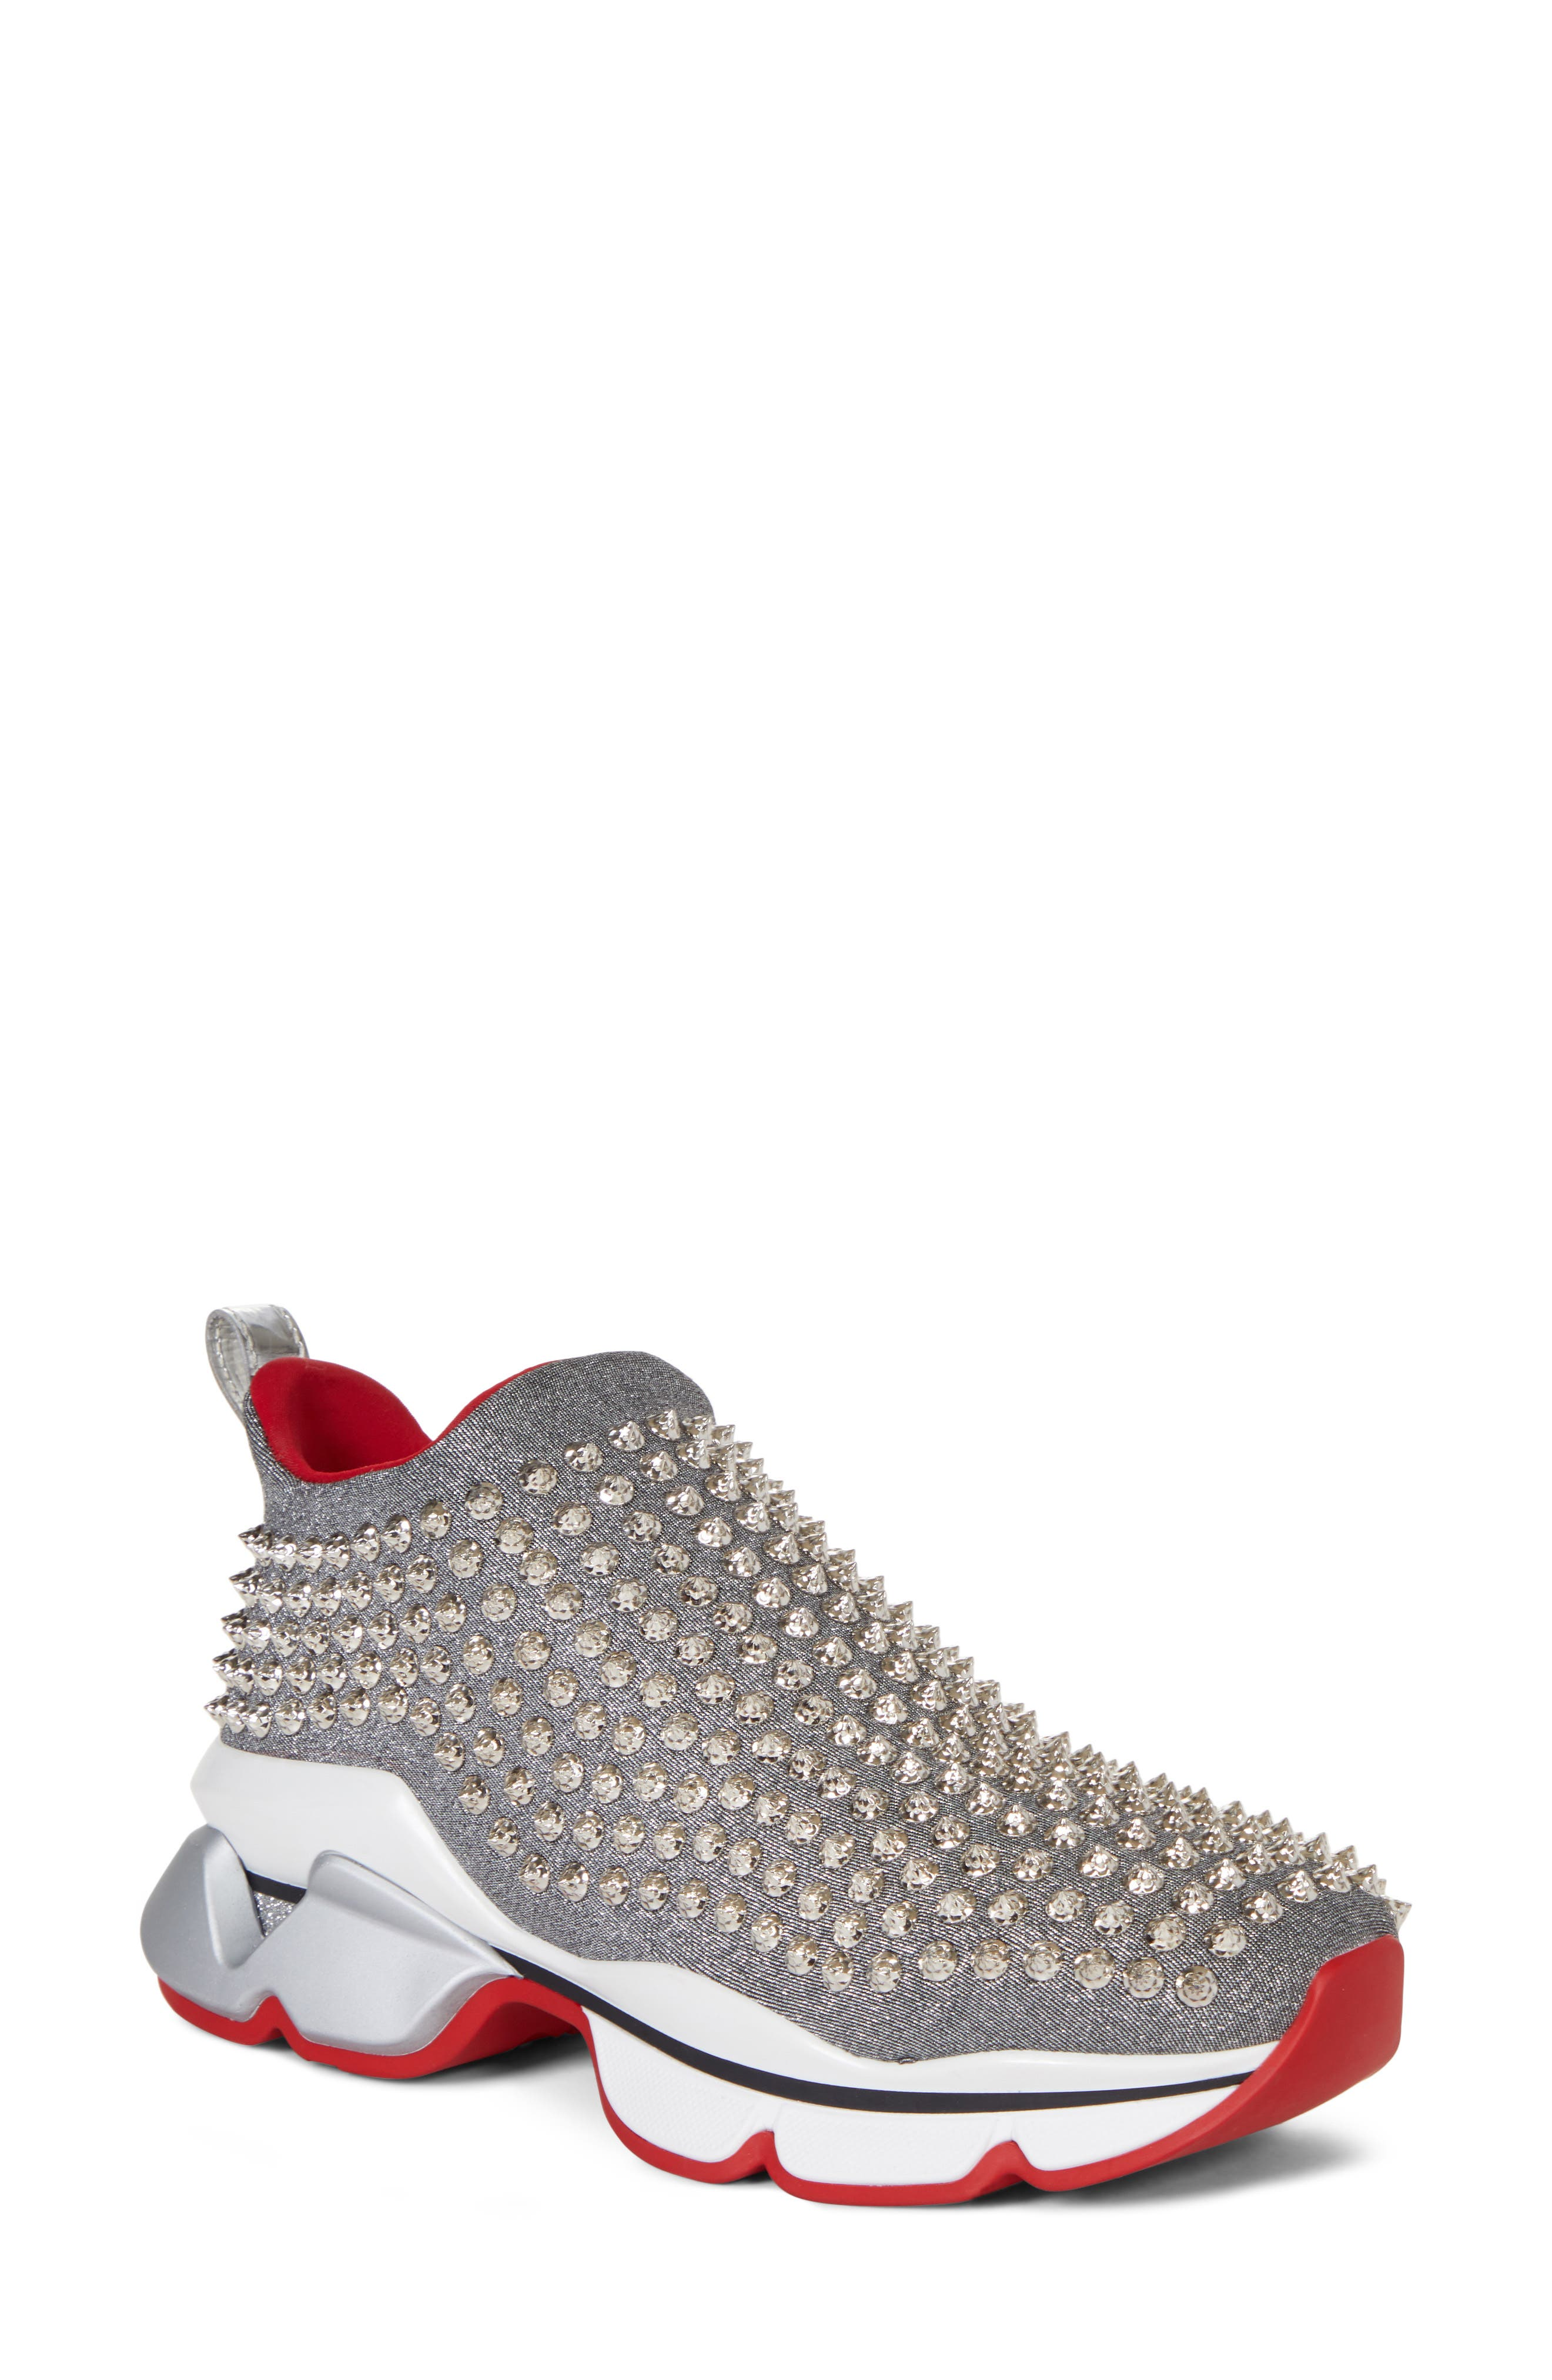 CHRISTIAN LOUBOUTIN Spiky Sock-Knit Slip-On Sneaker, Main, color, SILVER